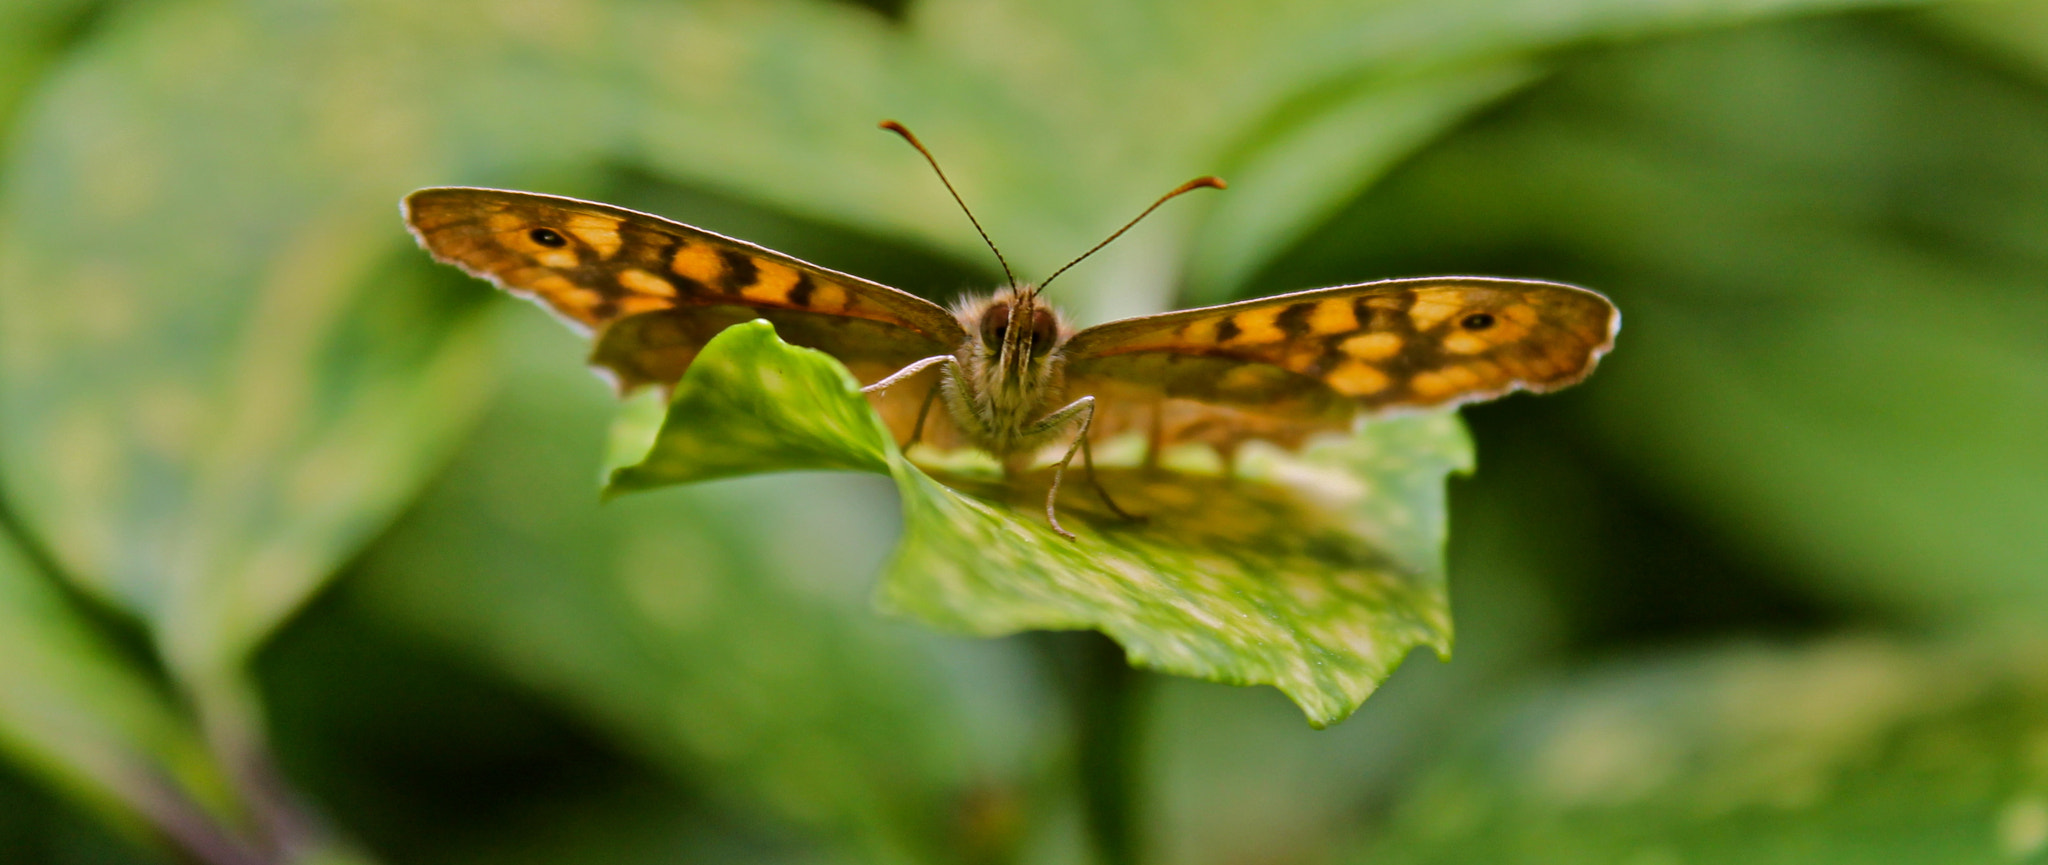 Photograph Butterfly Portrait by Lucas Phototaker on 500px